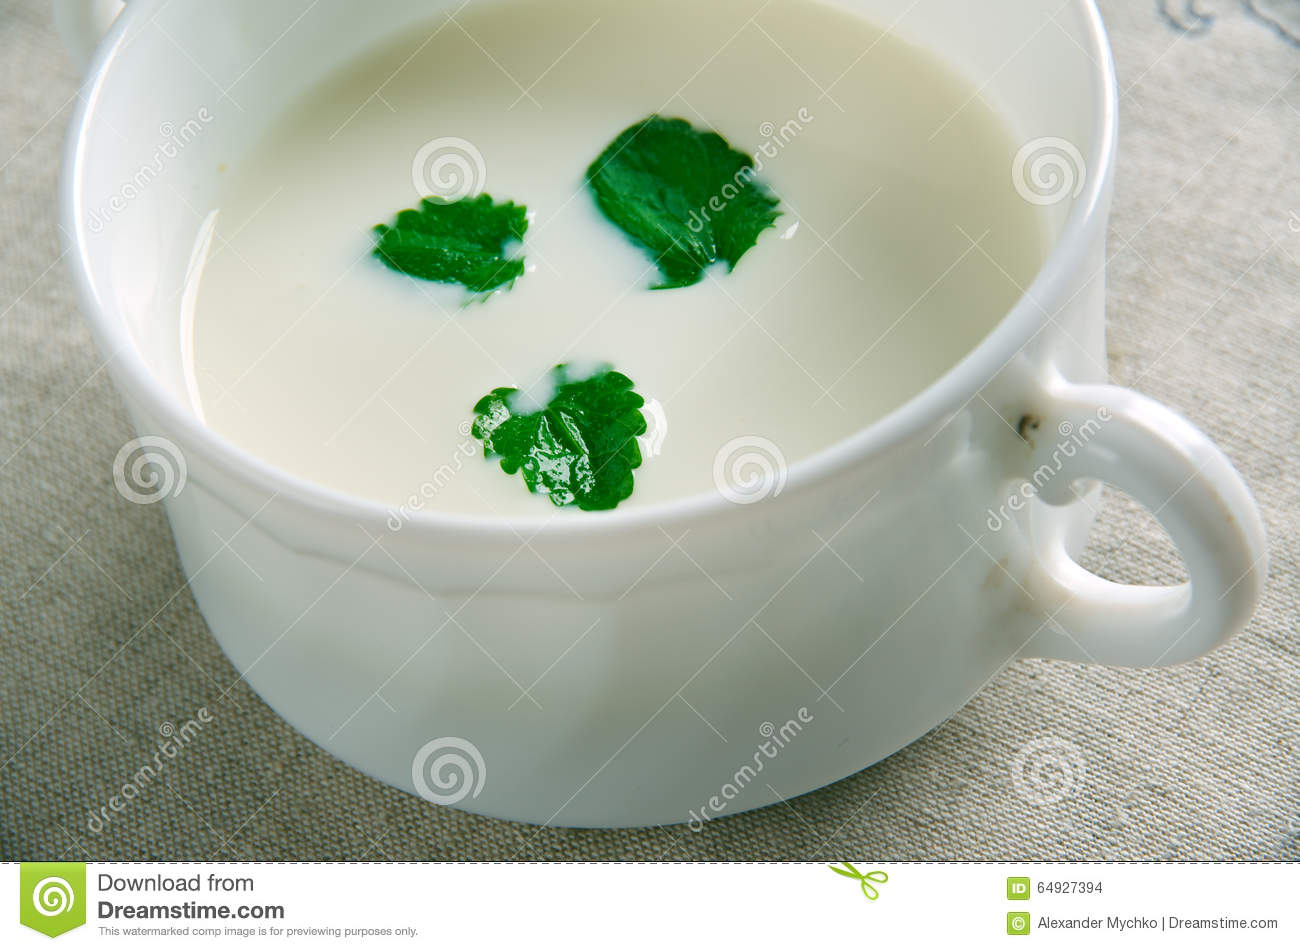 Minty Garlicky Yogurt Sauce Stock Photo - Image: 64927394